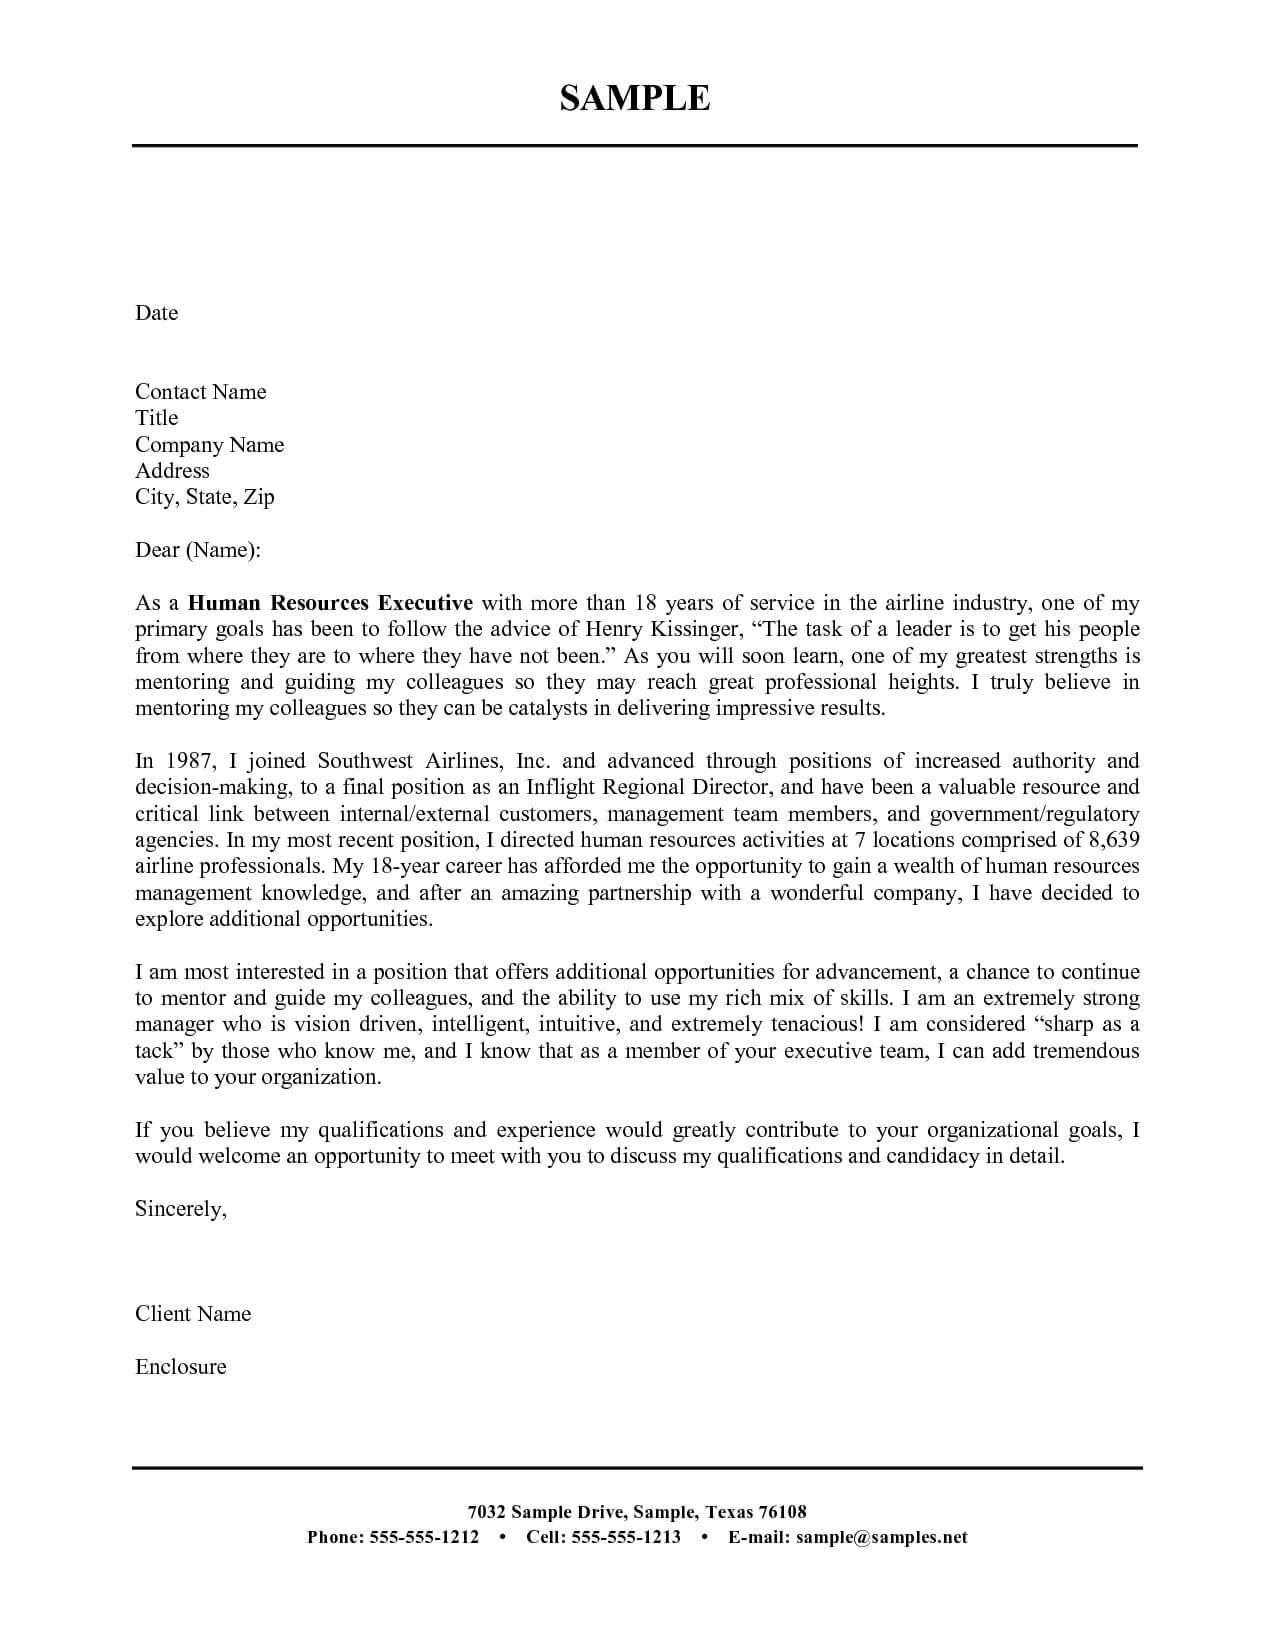 Free Cover Letter Template Microsoft Word Resume in Letter Of Interest Template Microsoft Word